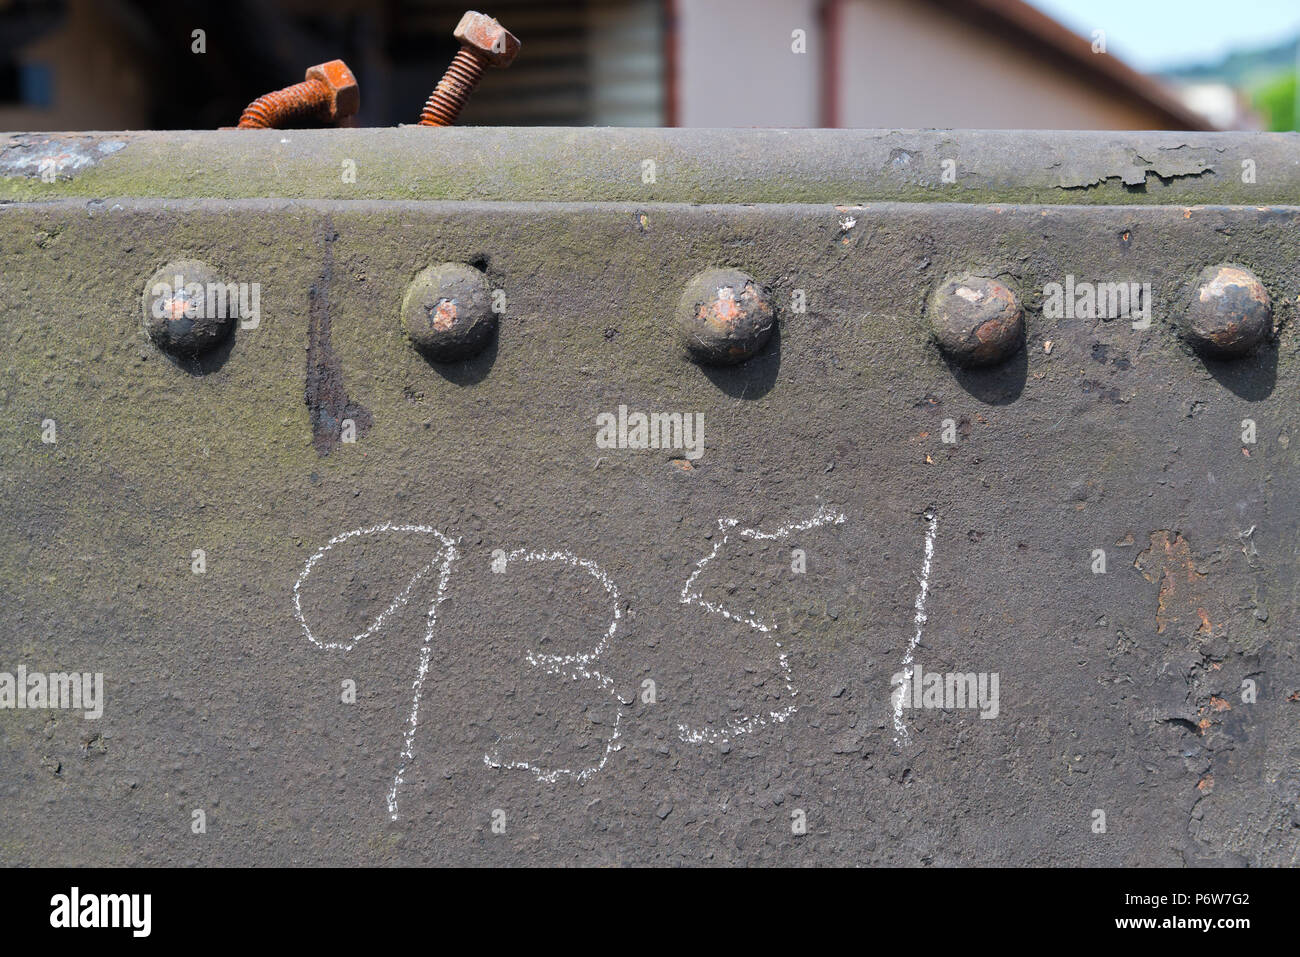 9351 Stock Photos & 9351 Stock Images - Alamy